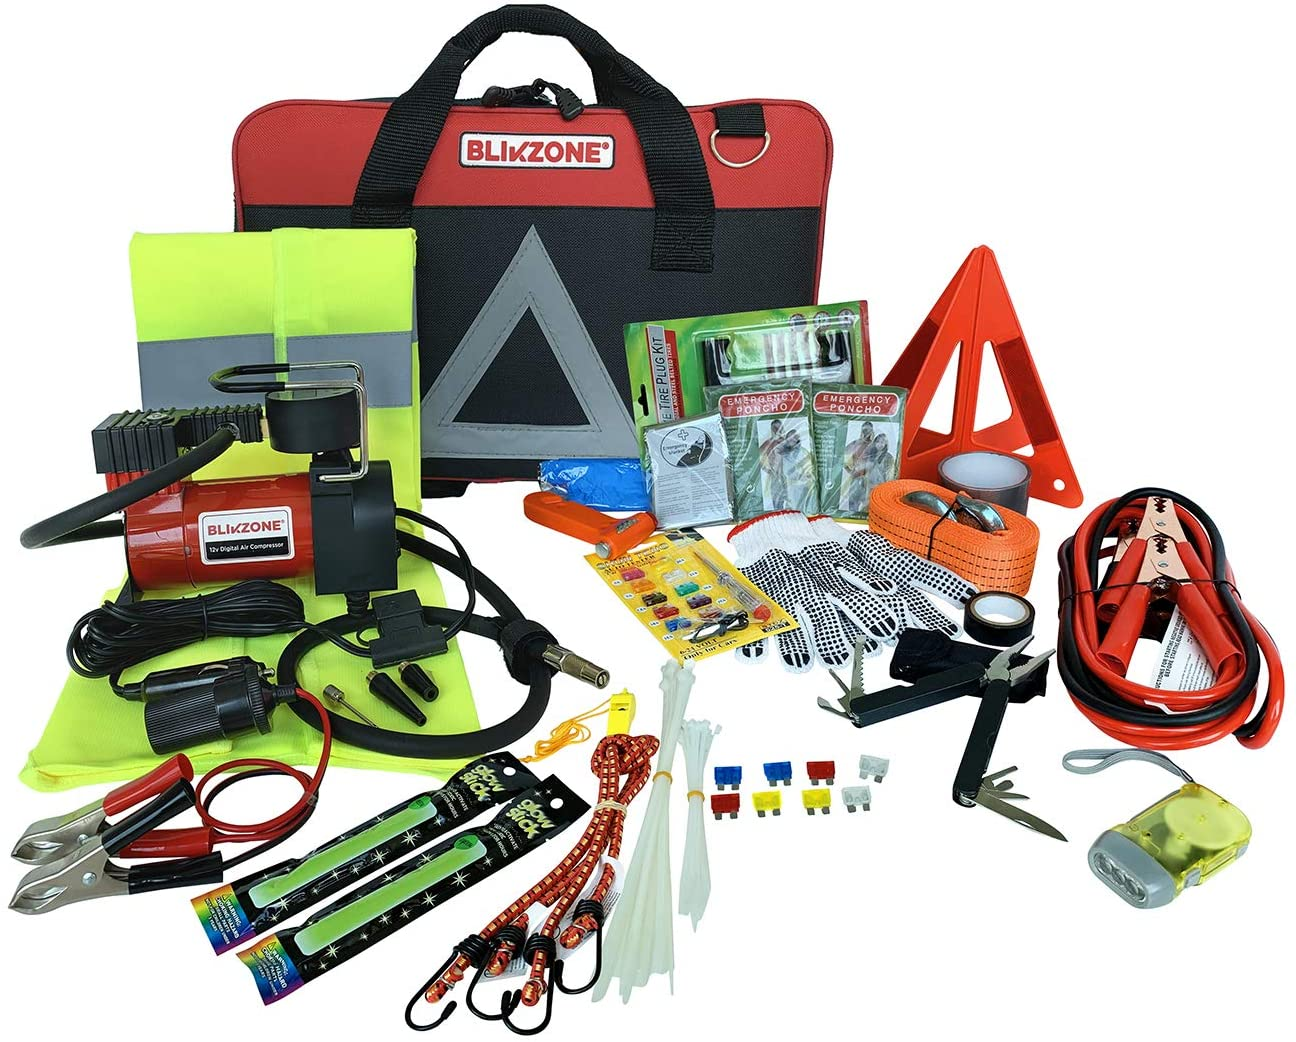 All the RV equipment packed into a roadside emrgency kit